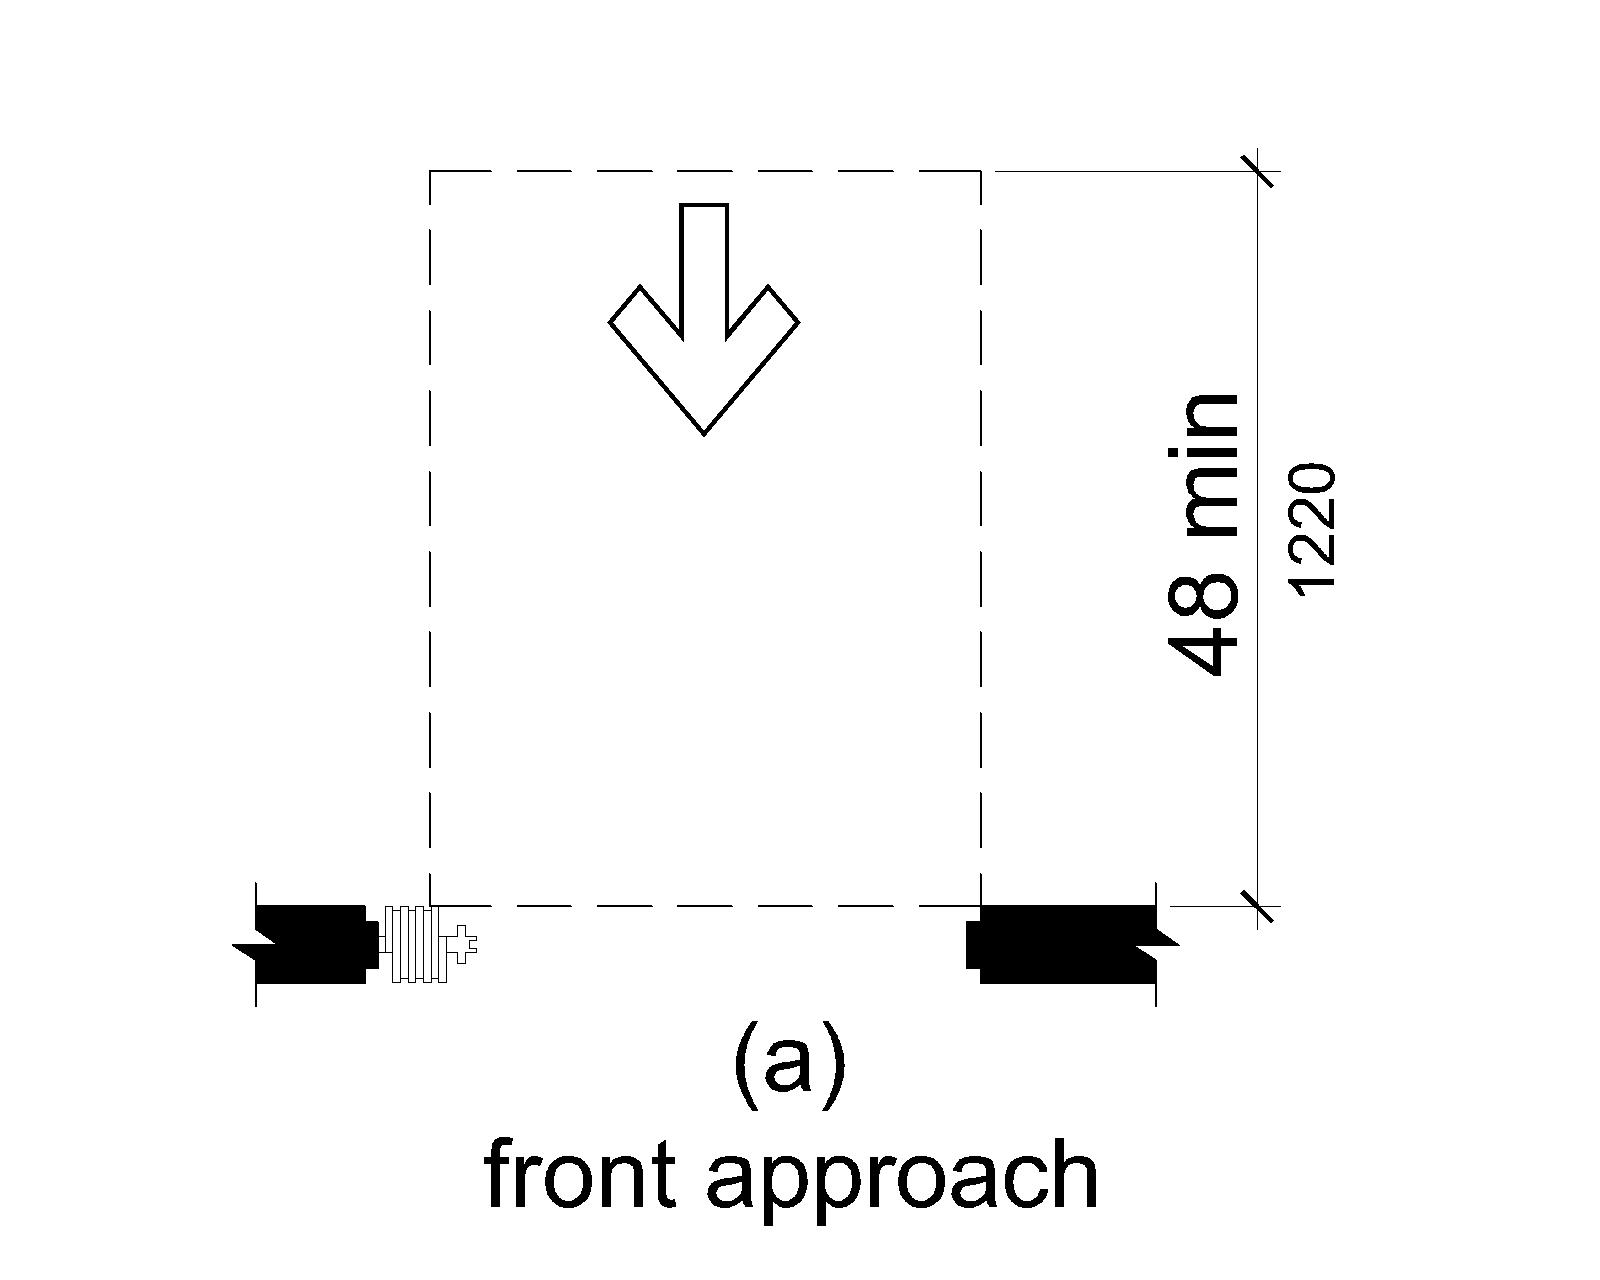 Figure (a) shows a front approach to a sliding or folding (accordion) door. Maneuvering clearance is as wide as the door opening and 48 inches (1220 mm) minimum perpendicular to the opening.